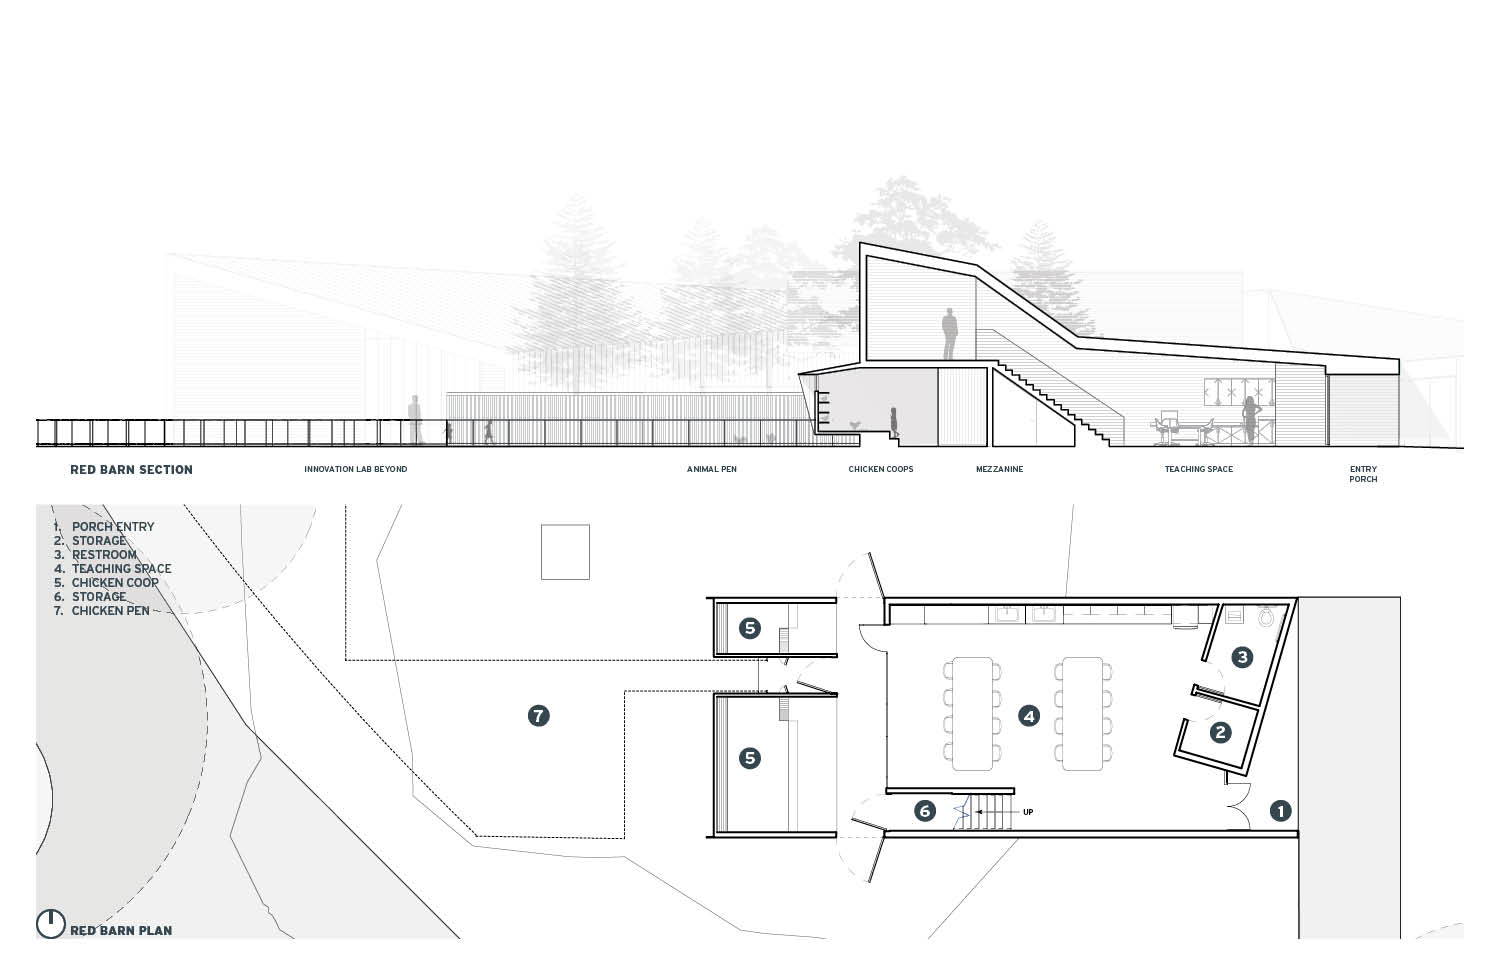 Red Barn Plan & Section Marlon Blackwell Architects}